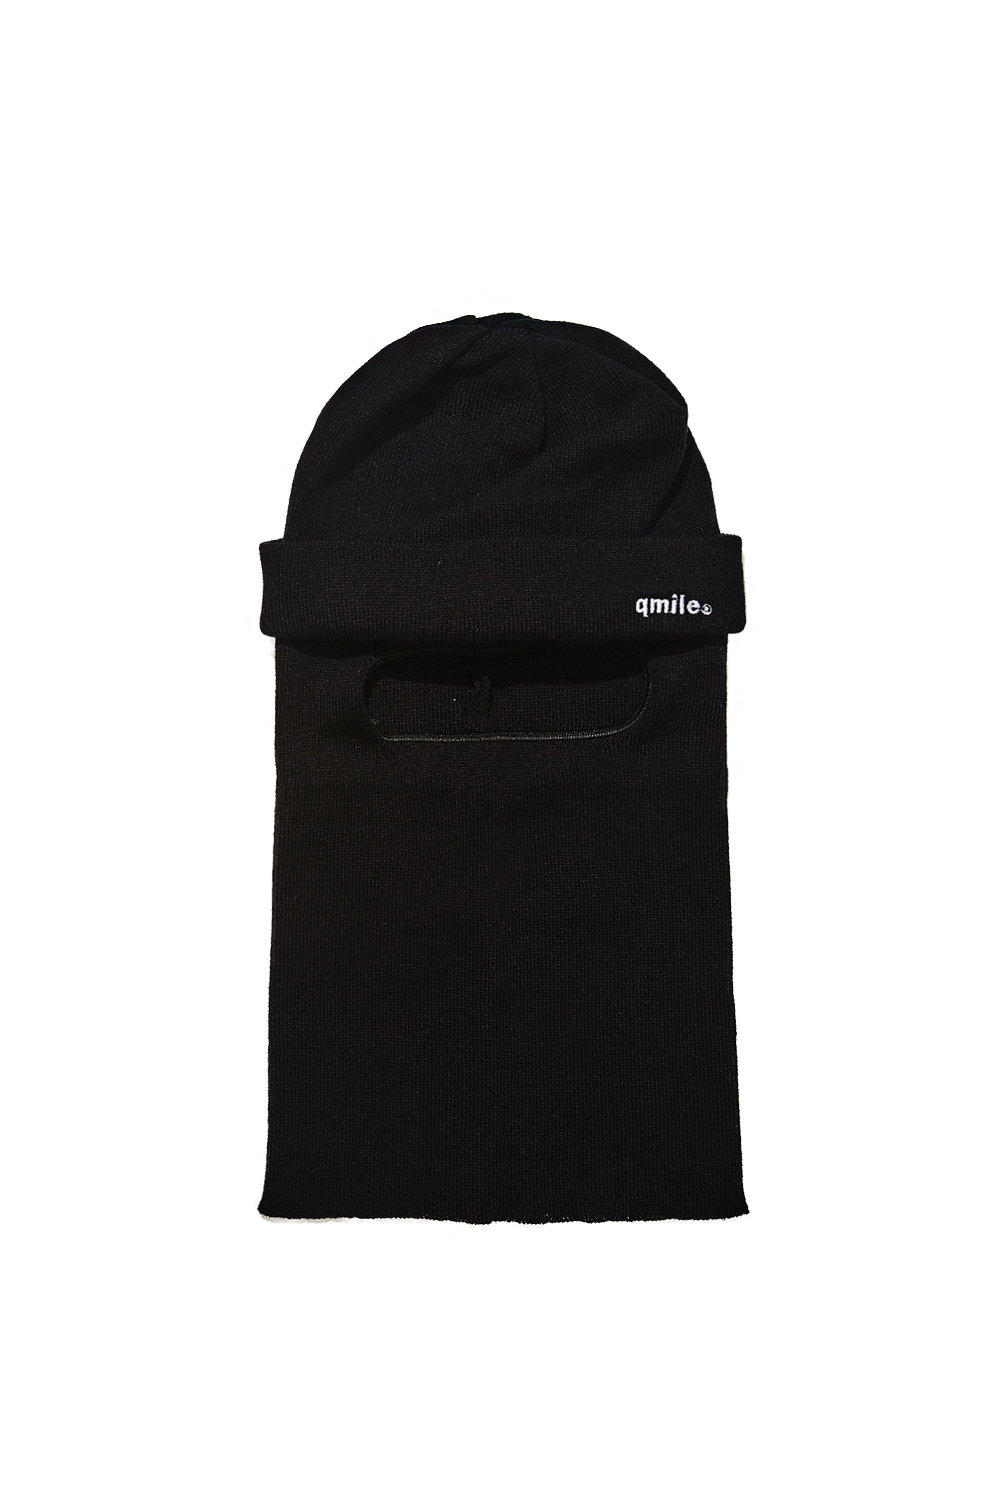 FACE MASK BEANIE | BLACK